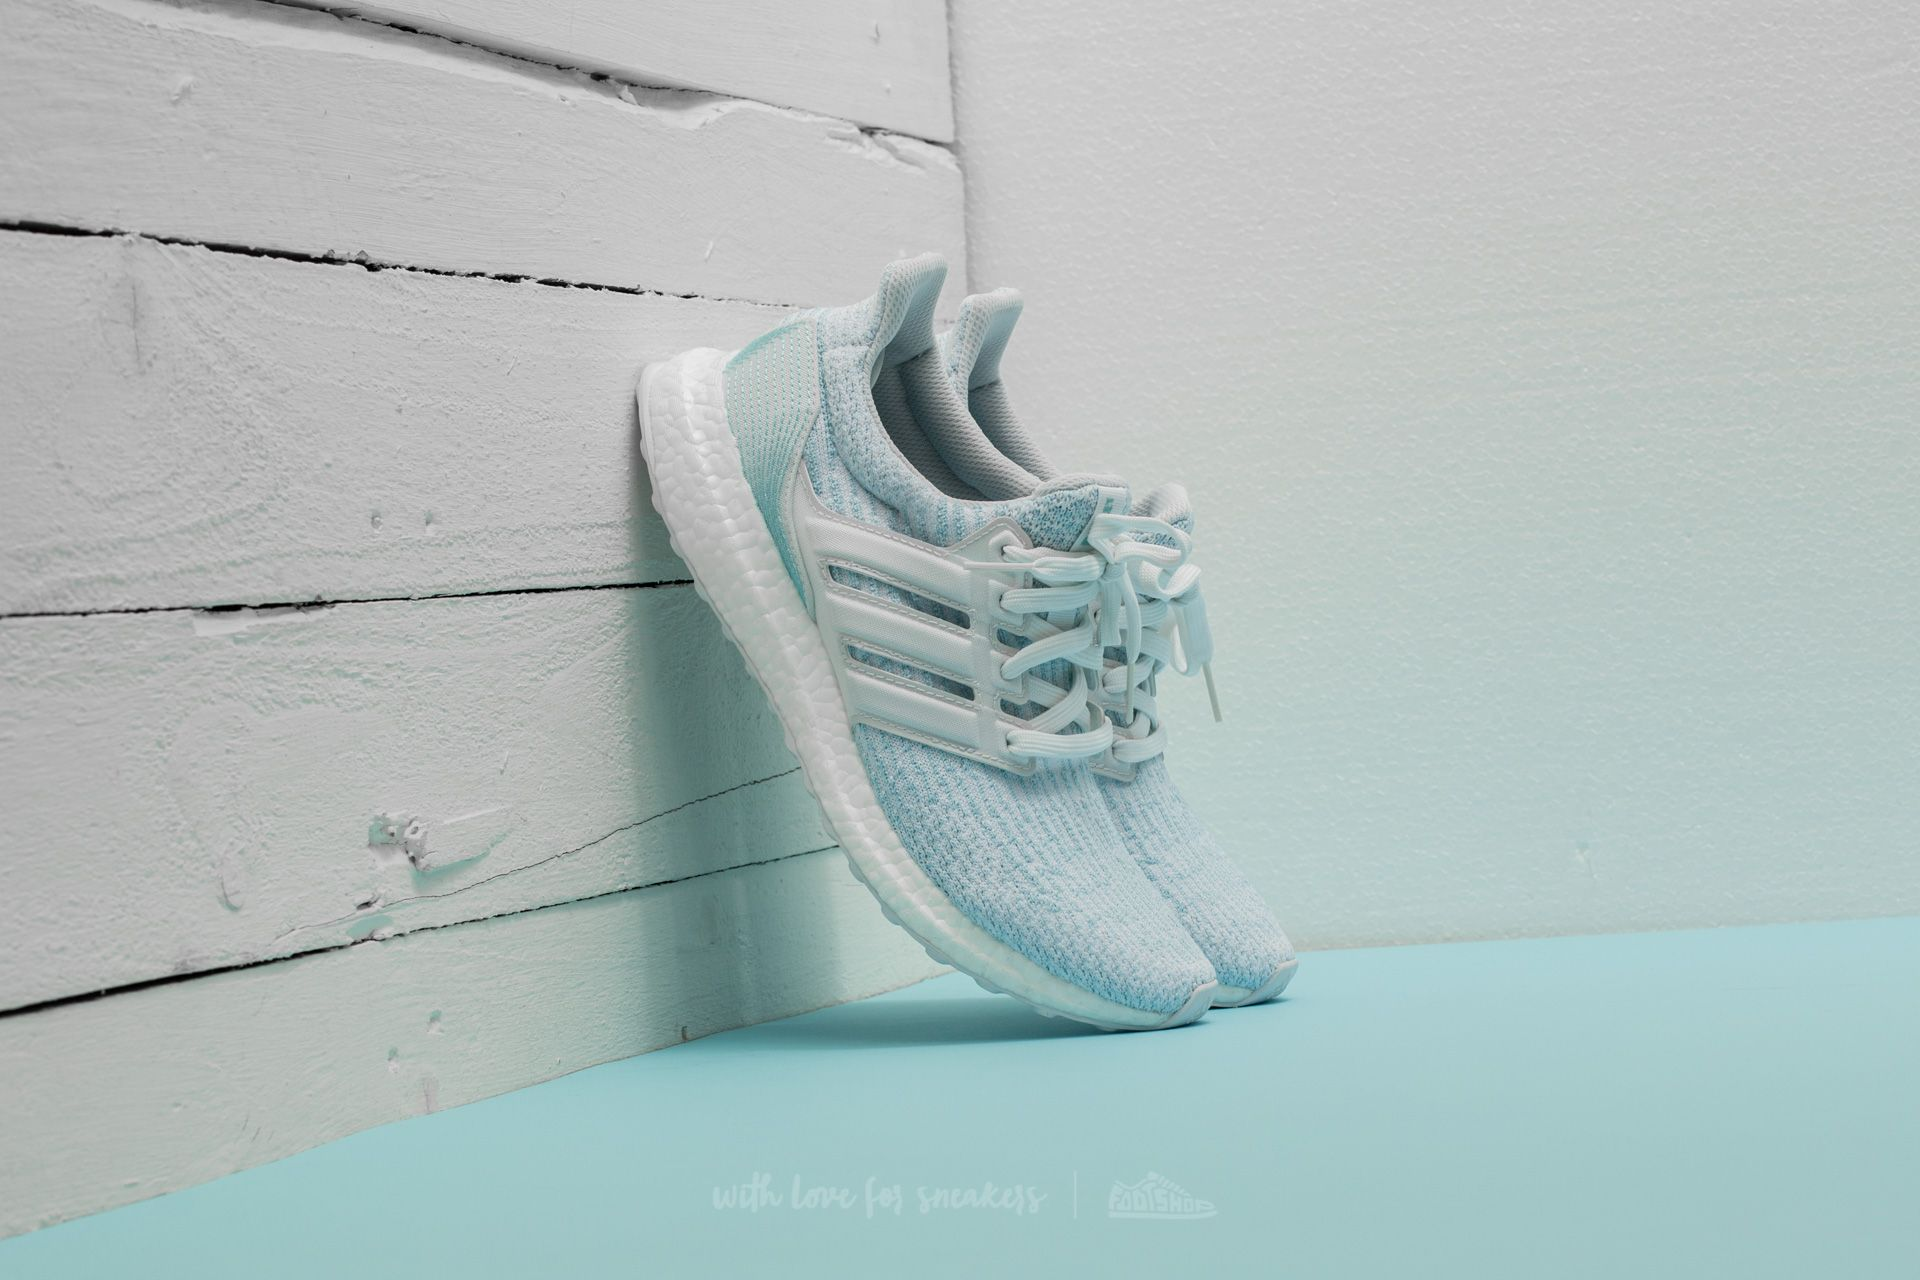 Zapatillas Hombre adidas x Parley UltraBoost Ftw White/ Ftw White/ Icey Blue